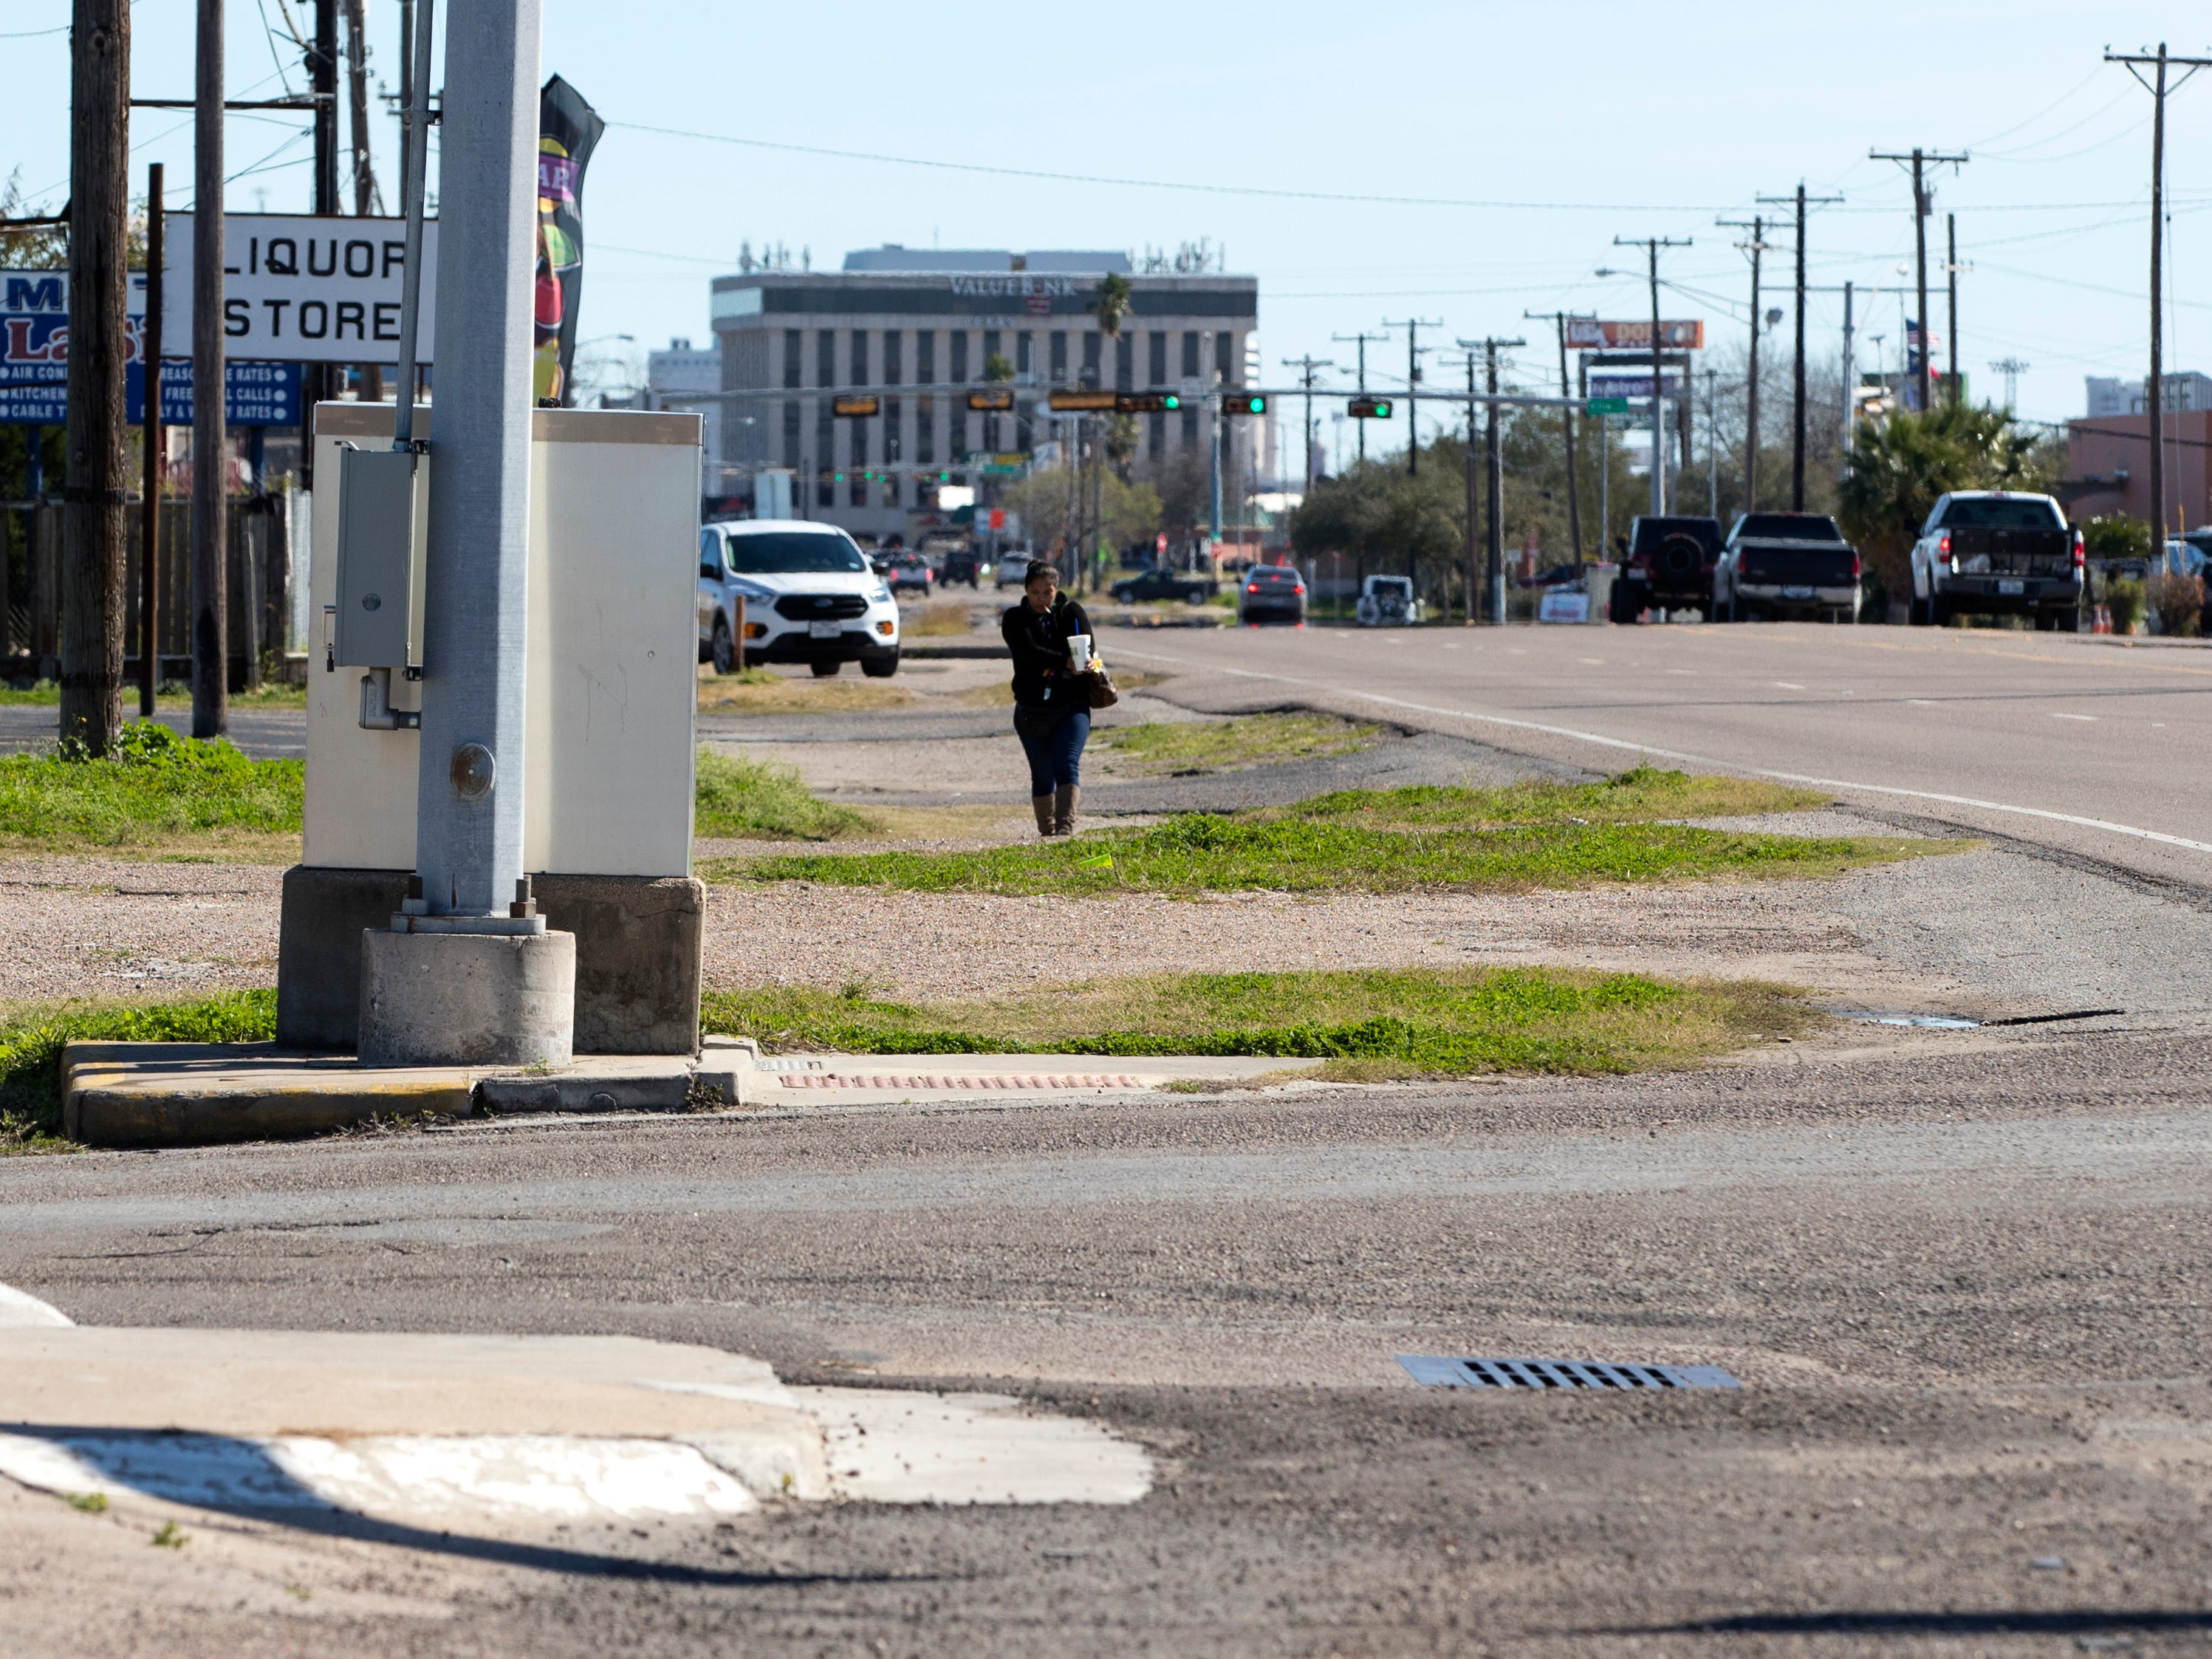 A woman walks along Leopard Street on Tuesday, January 29, 2019. Statistics from the Corpus Christi Police Department show that a high number of auto-pedestrian accidents take place in the 4500 block of Leopard Street.